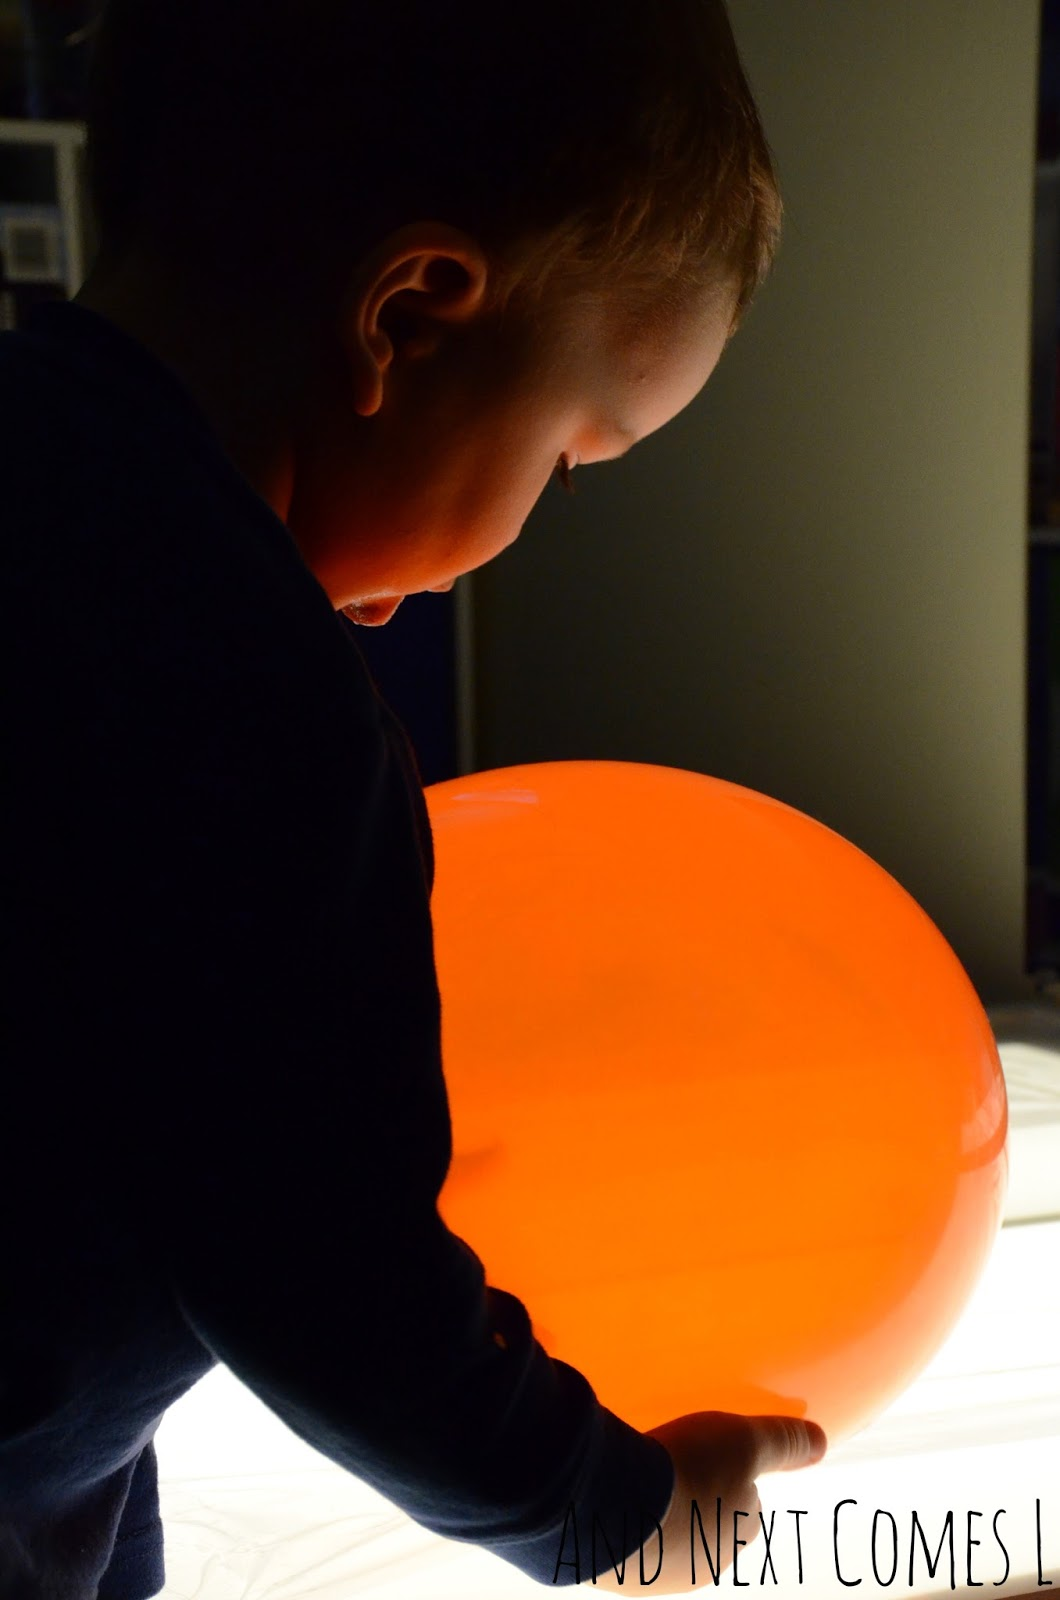 K checking out the balloons on the light table from And Next Comes L